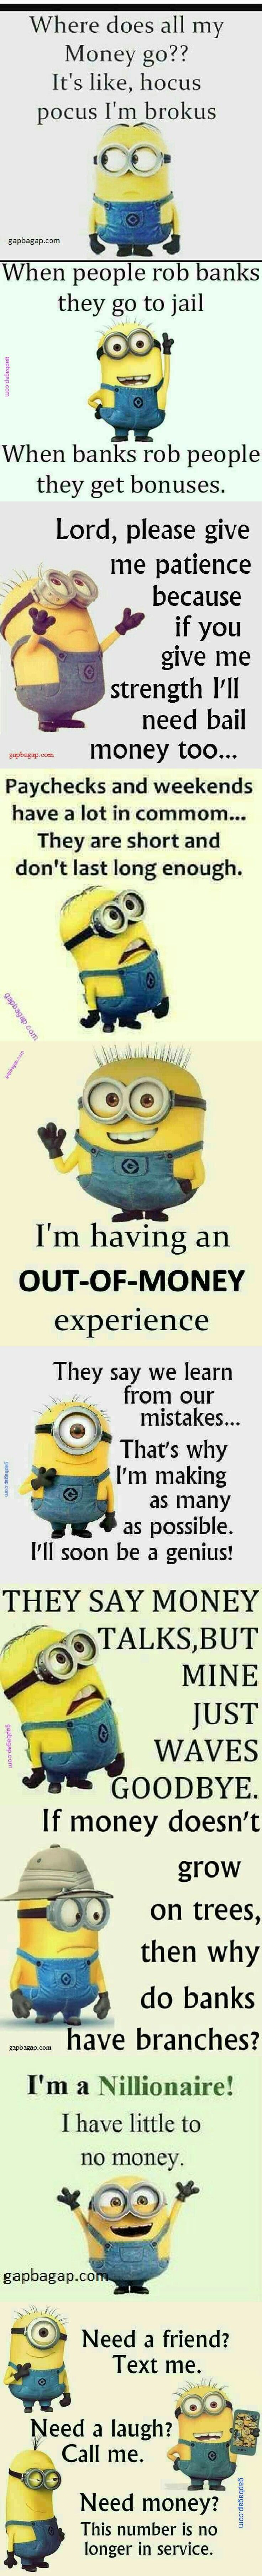 Best 25 Funny money quotes ideas on Pinterest